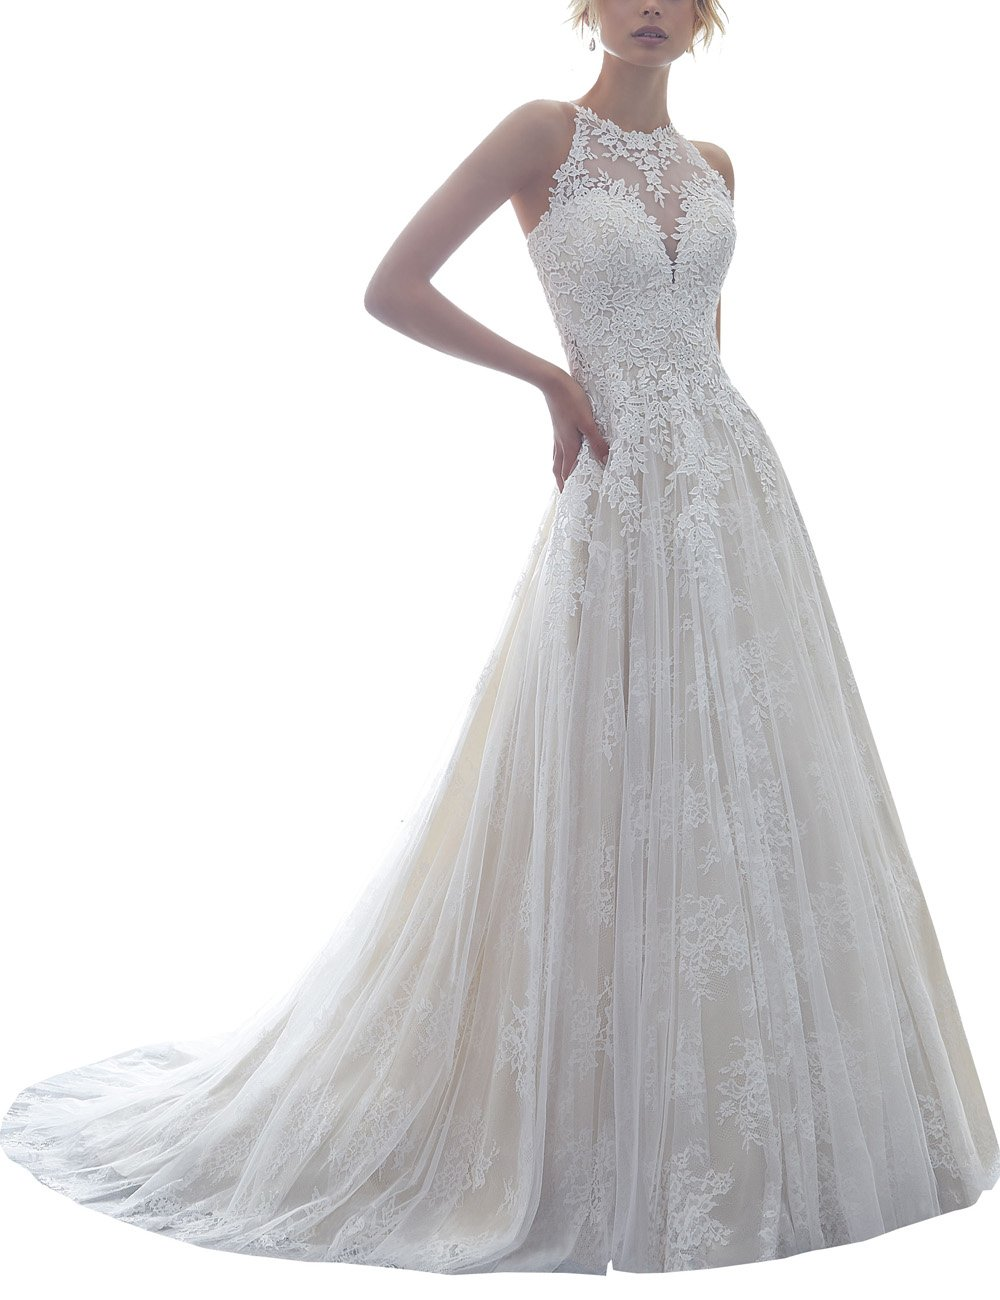 Halter Lace Sleeveless Sheer Back Long A Line Wedding Dresses For Bride (All Ivory,14)